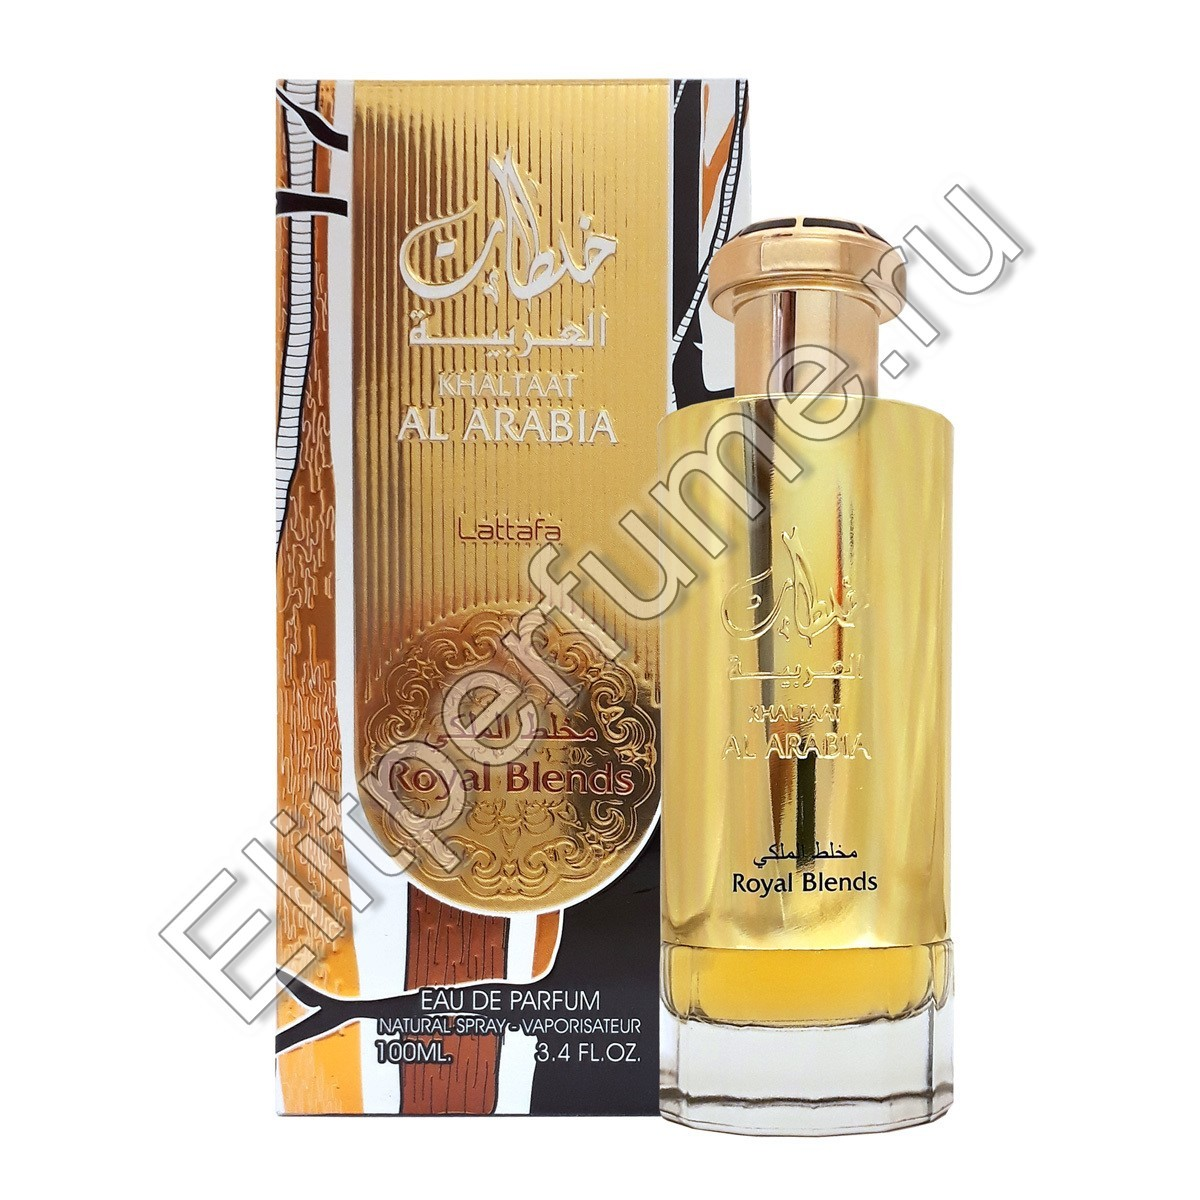 KHALTAAT AL ARABIA ROYAL BLENDS w EDP 100 мл спрей от Lattafa Латтафа